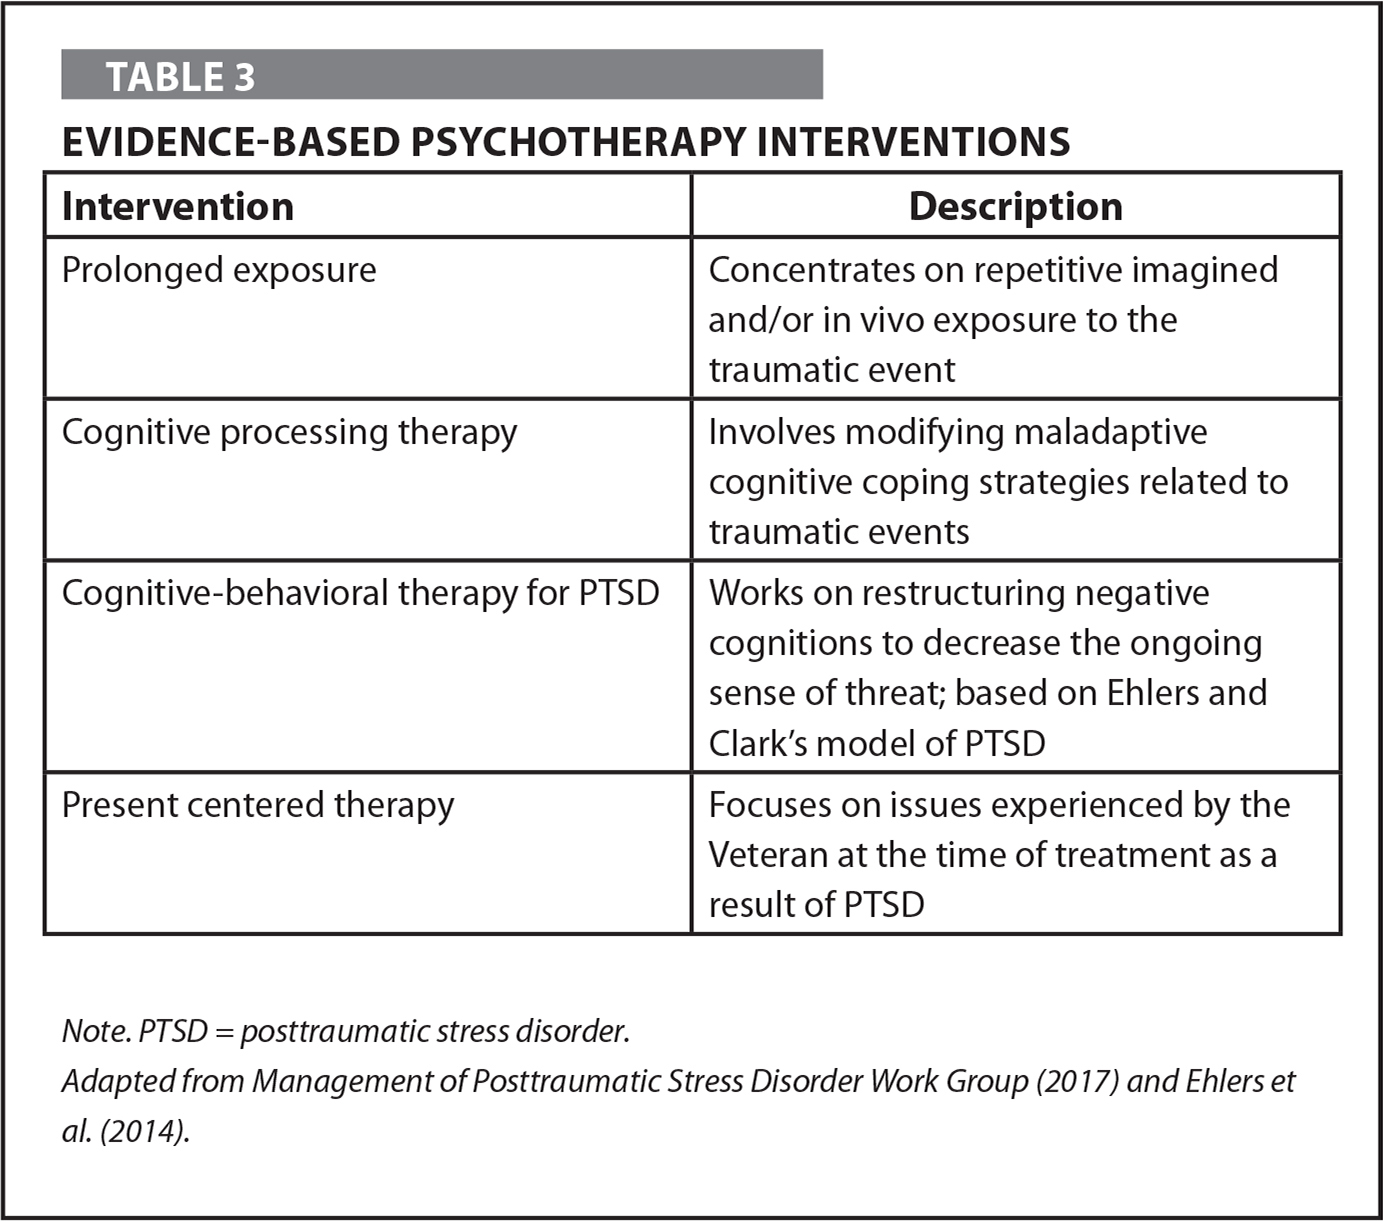 Evidence-Based Psychotherapy Interventions